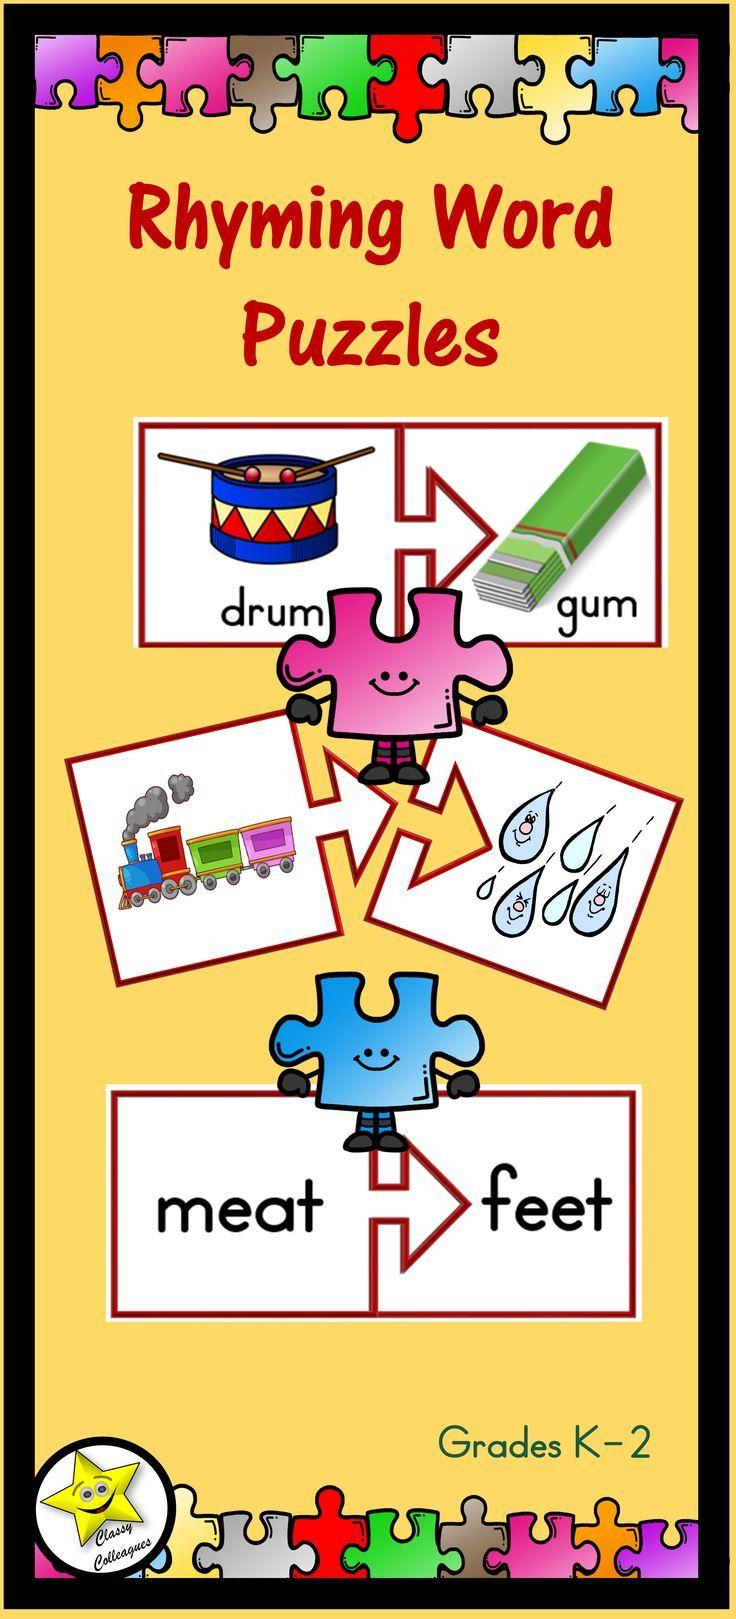 There are 123 pairs of rhyming words used in this product, and they are provided for you three ways. One set has only pictures, another has only words, and the third has both pictures and words. A word list is provided for your reference. $